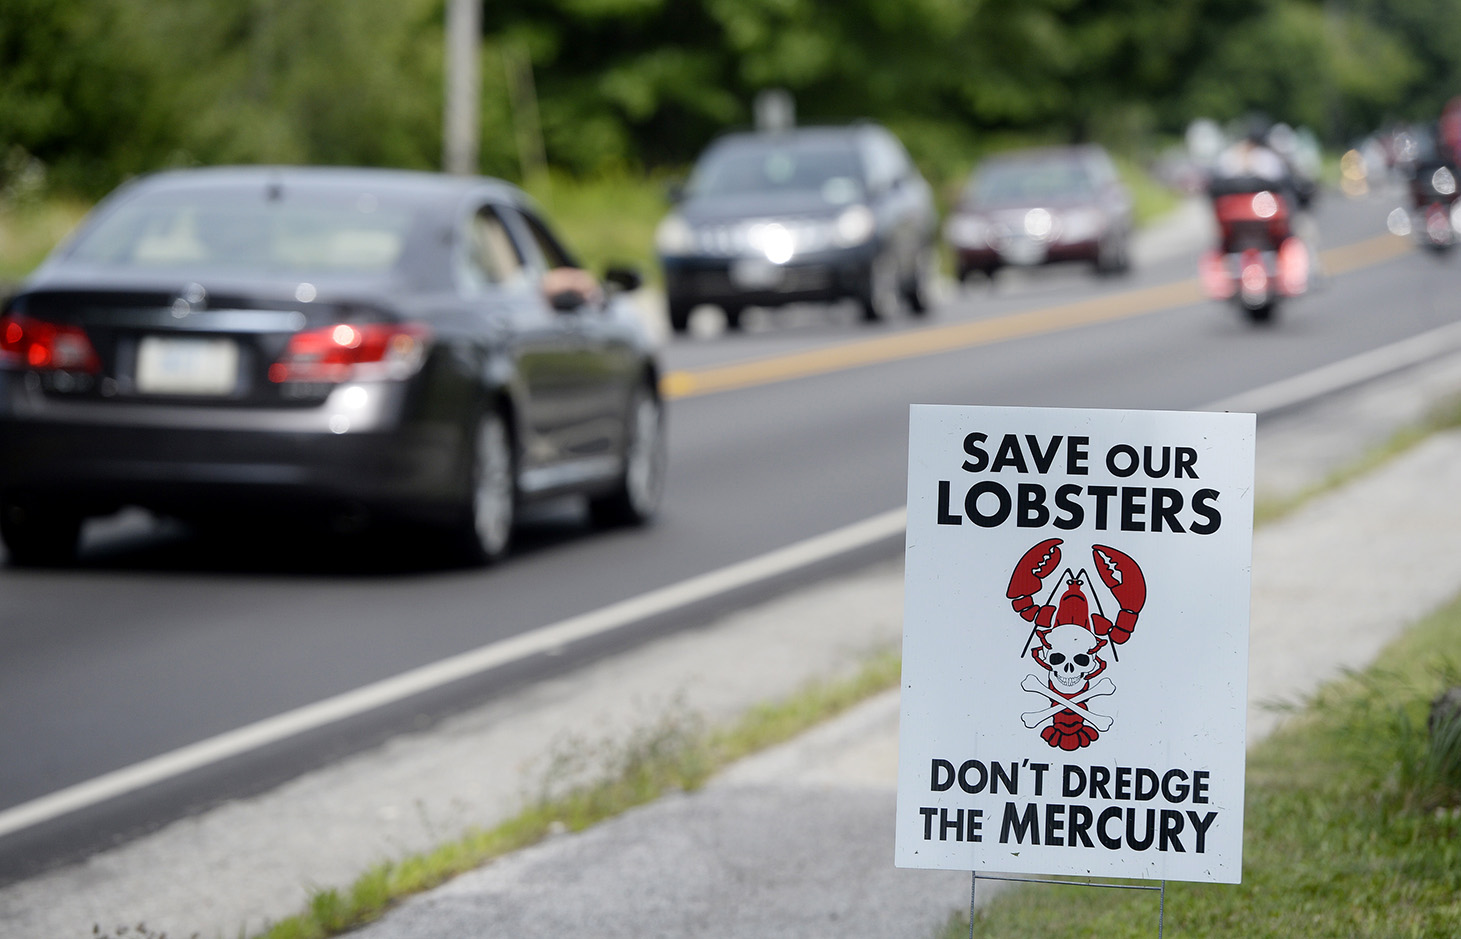 A sign opposing the dredging project on a lawn on Route 1 in Searsport.